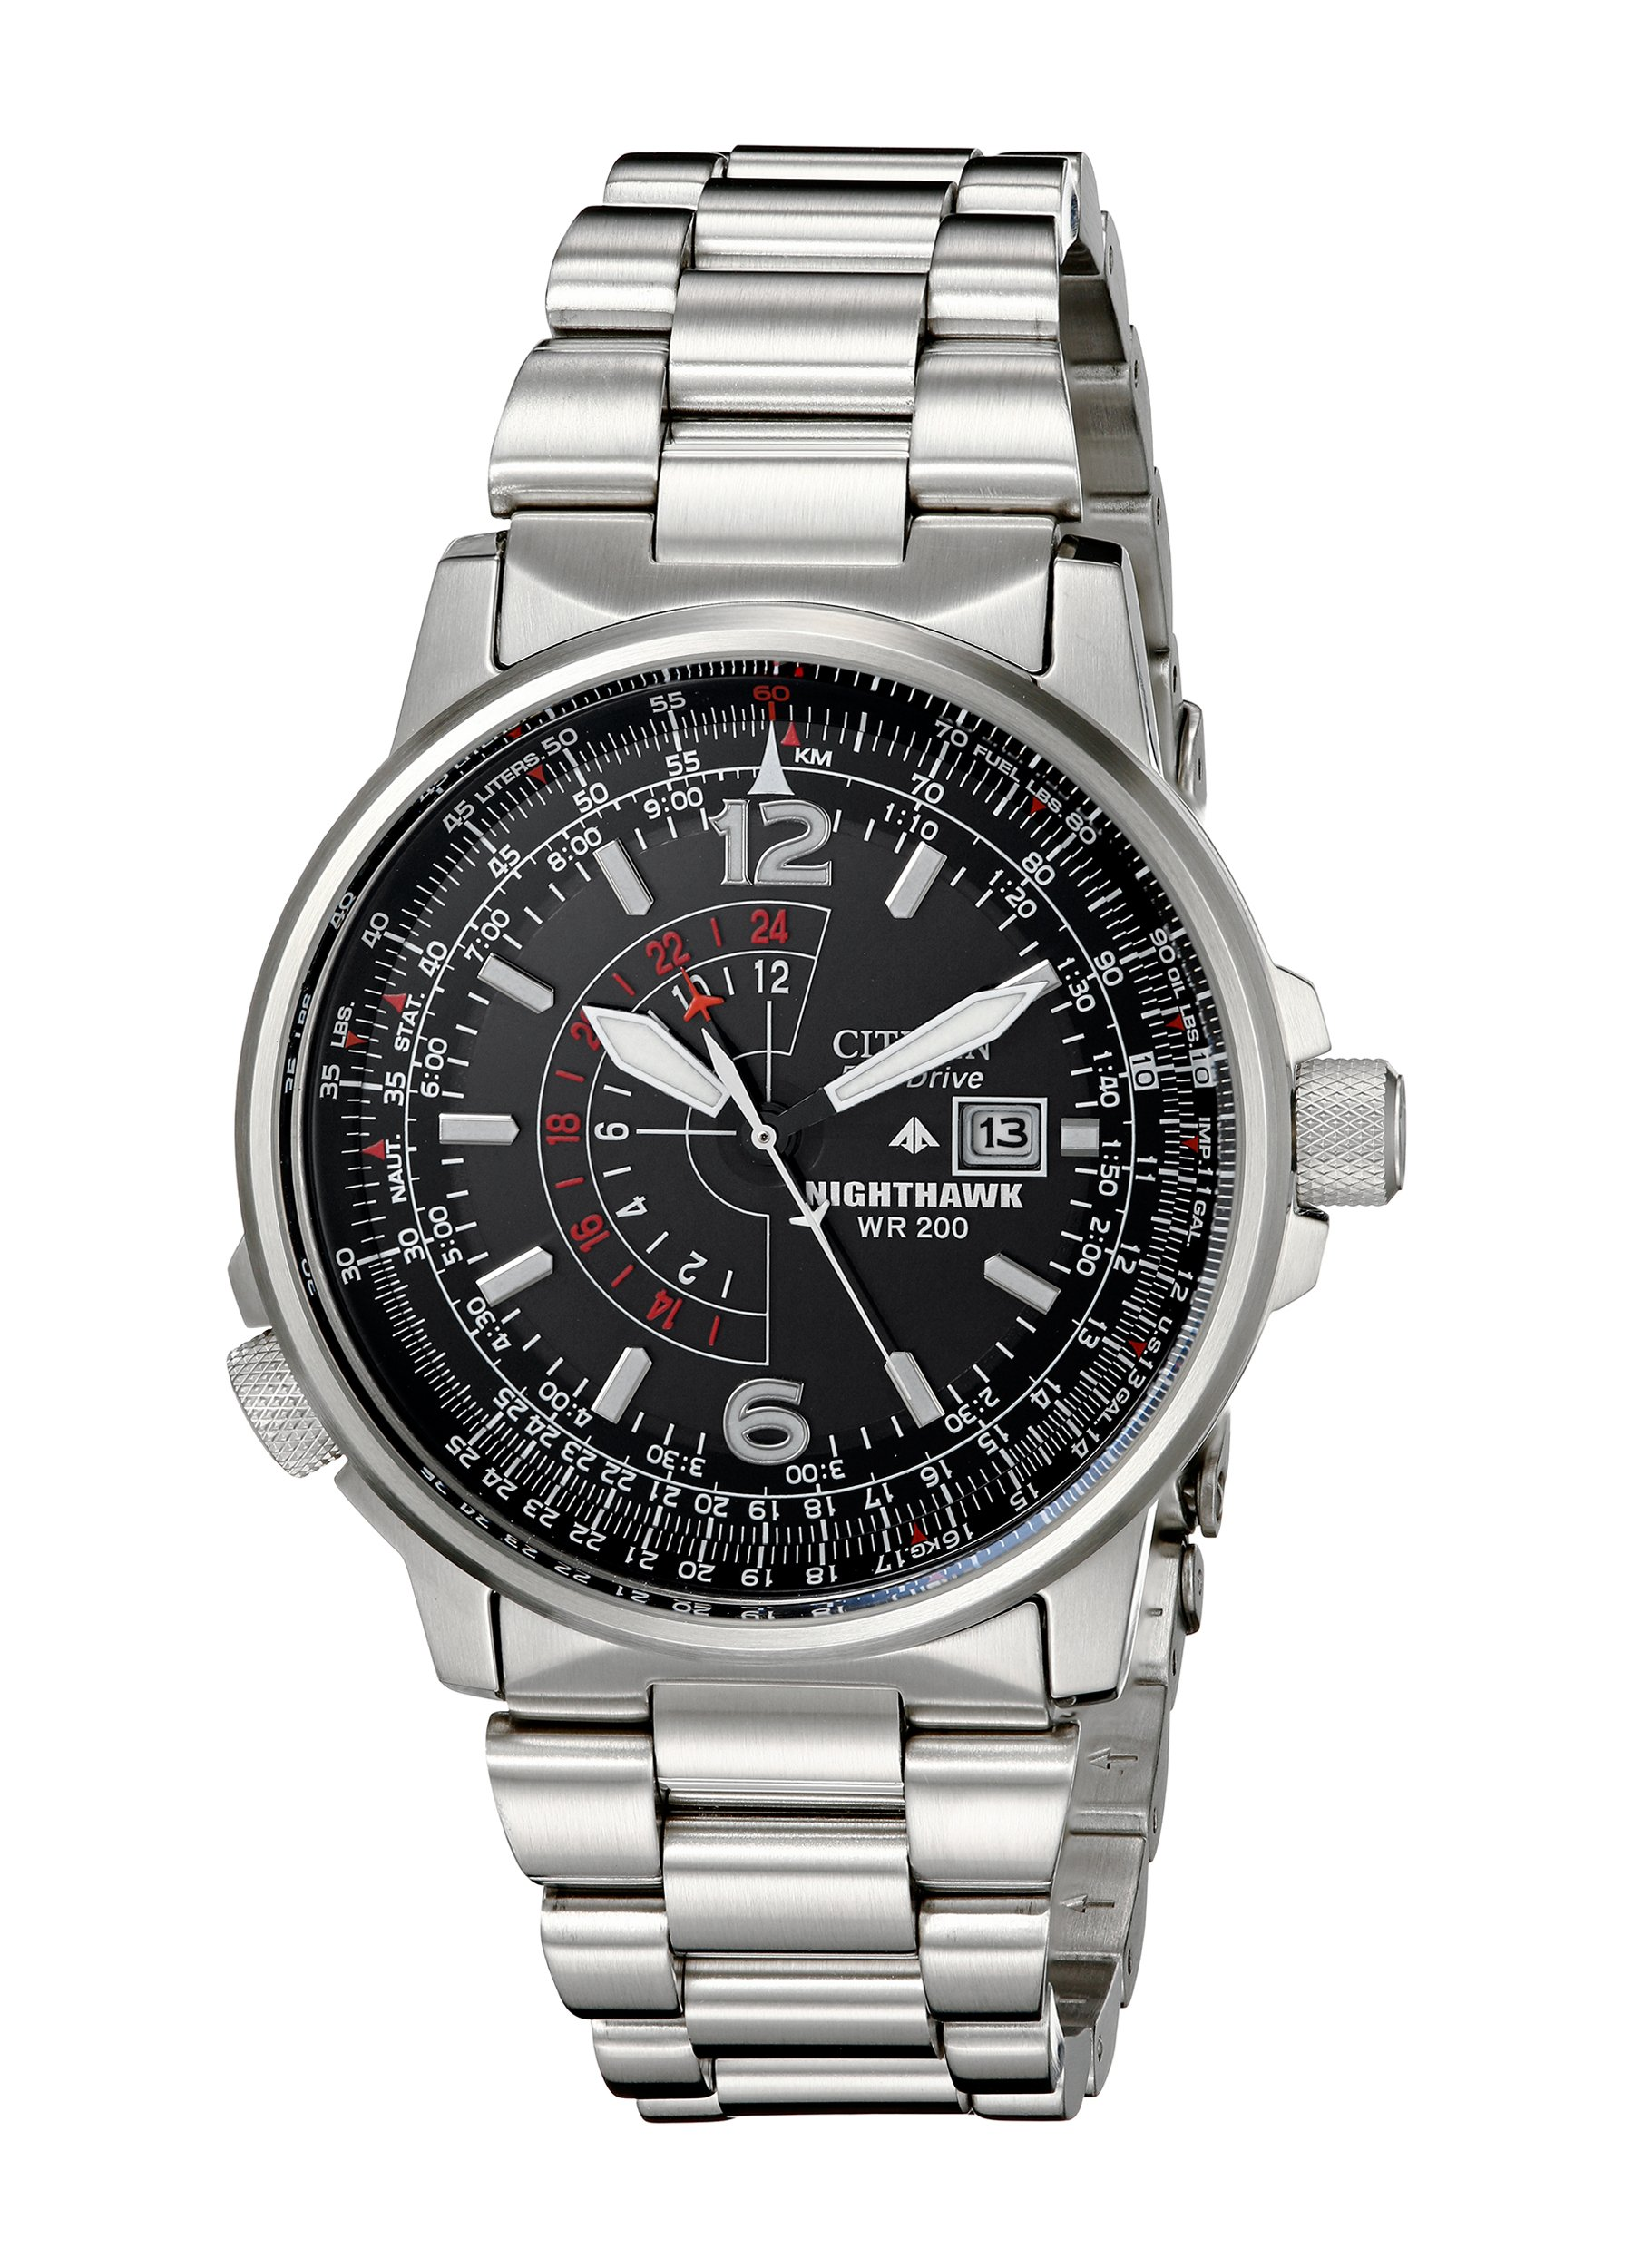 0399d2e2d7b Citizen Men s Eco-Drive Promaster Nighthawk Dual Time Watch with Date